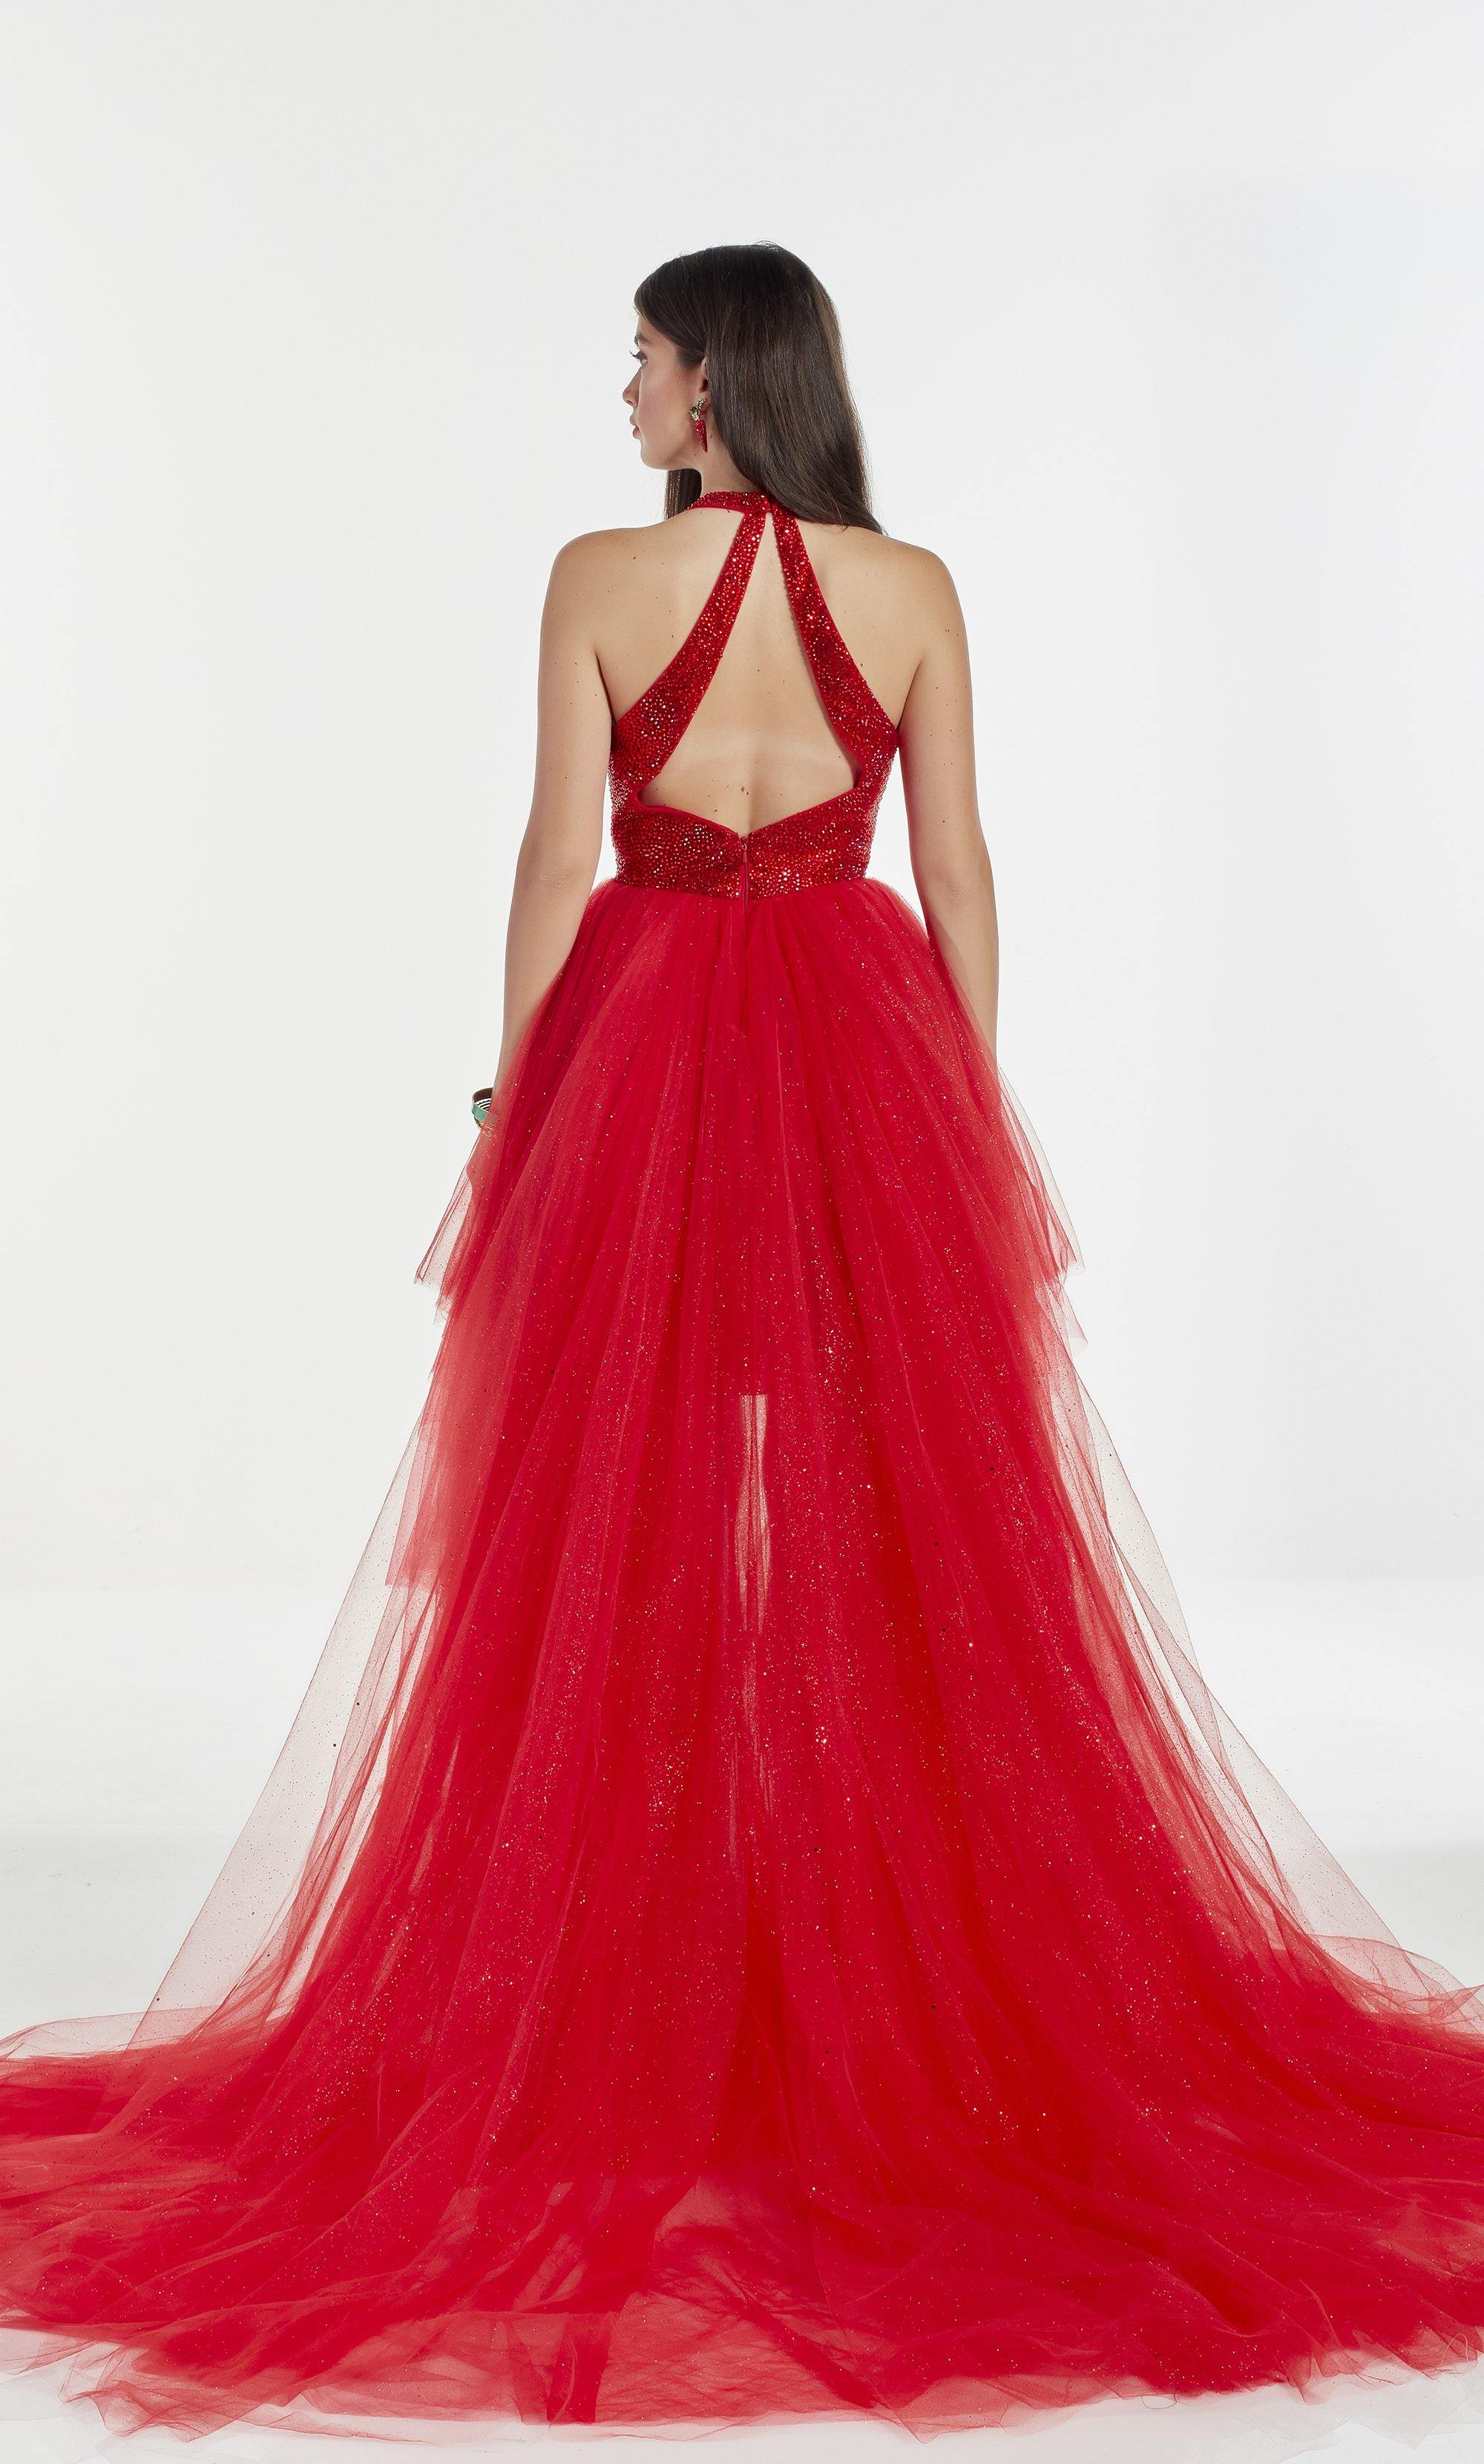 Red glitter tulle high-low prom dress with an adjustable plunging neckline and heat set stone embellished bodice